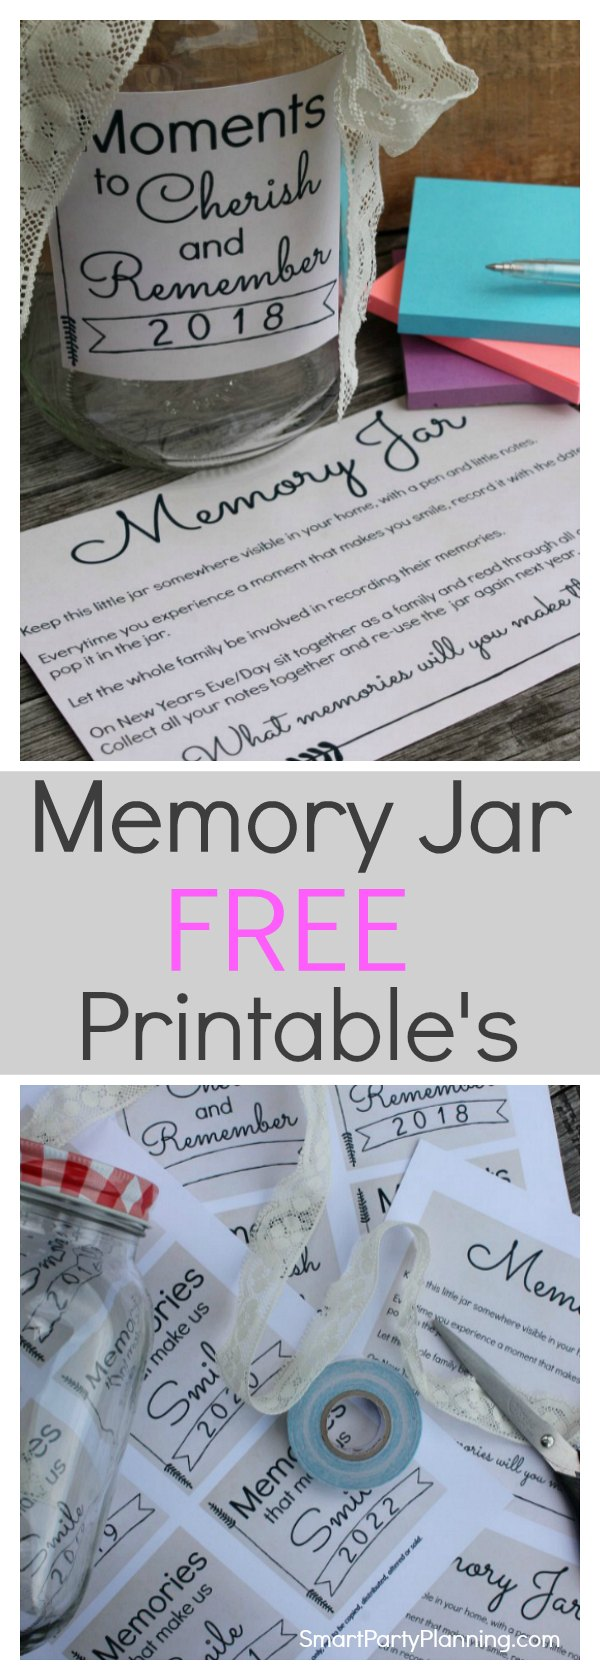 Learn how to make a memory jar as a great alternative to writing a journal. Free printable's are available to make this an easy DIY. A memory jar is the best way to capture the moments taken place during the year which can easily be forgotten. A memory jar printable is available from 2018-2022, plus an instruction sheet. Click to get the free printable's in two designs. #Memoryjar #Freeprintable #gift #Printable